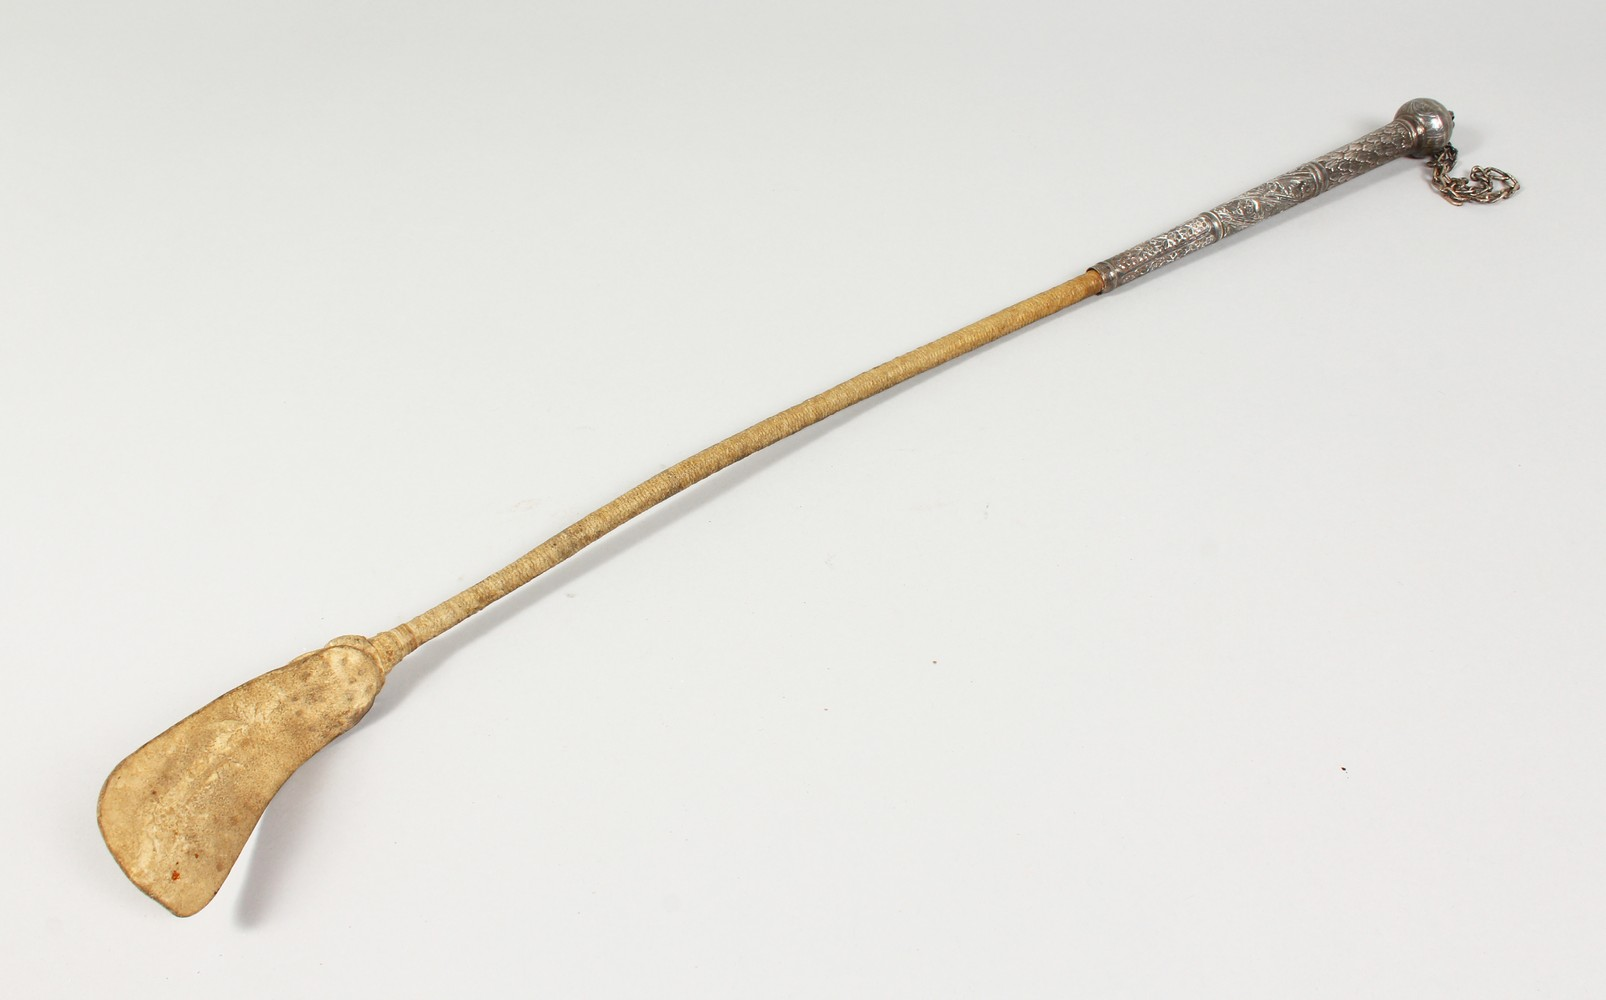 Lot 1424 - AN EASTERN SILVER HANDLED RIDING CROP. 25ins long.